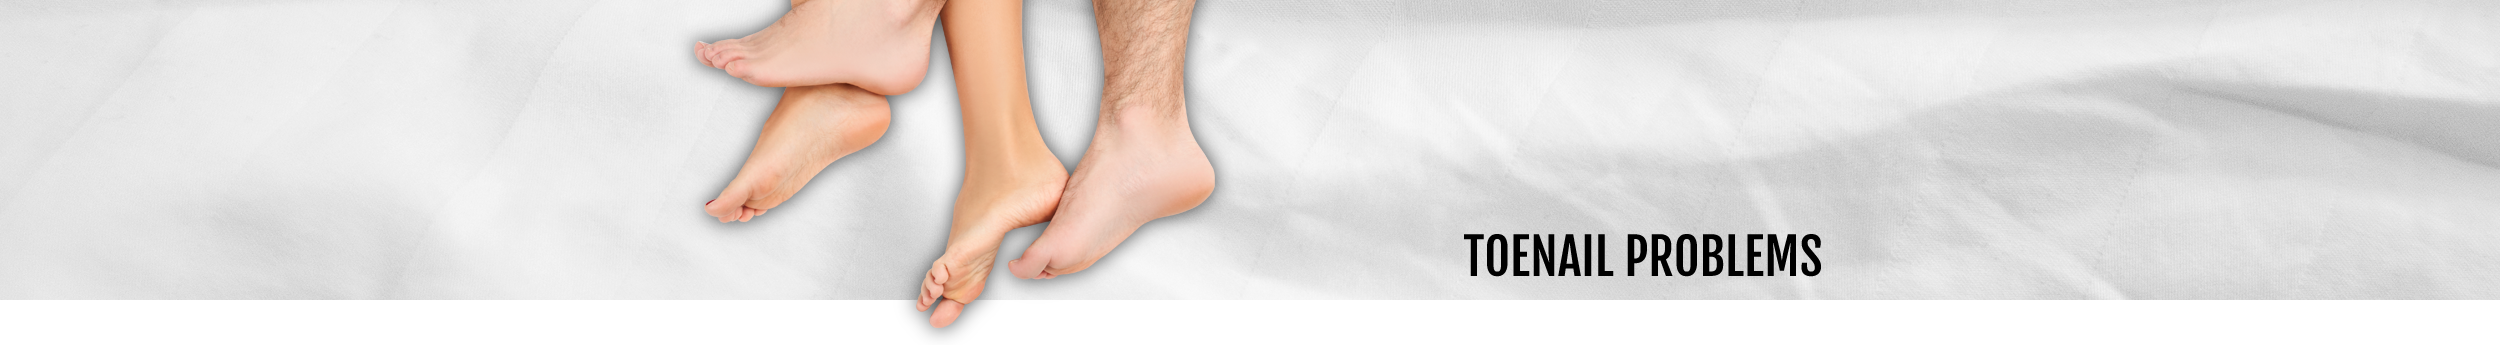 Toenail problems header for the Walk IN Foot Clinic in central London